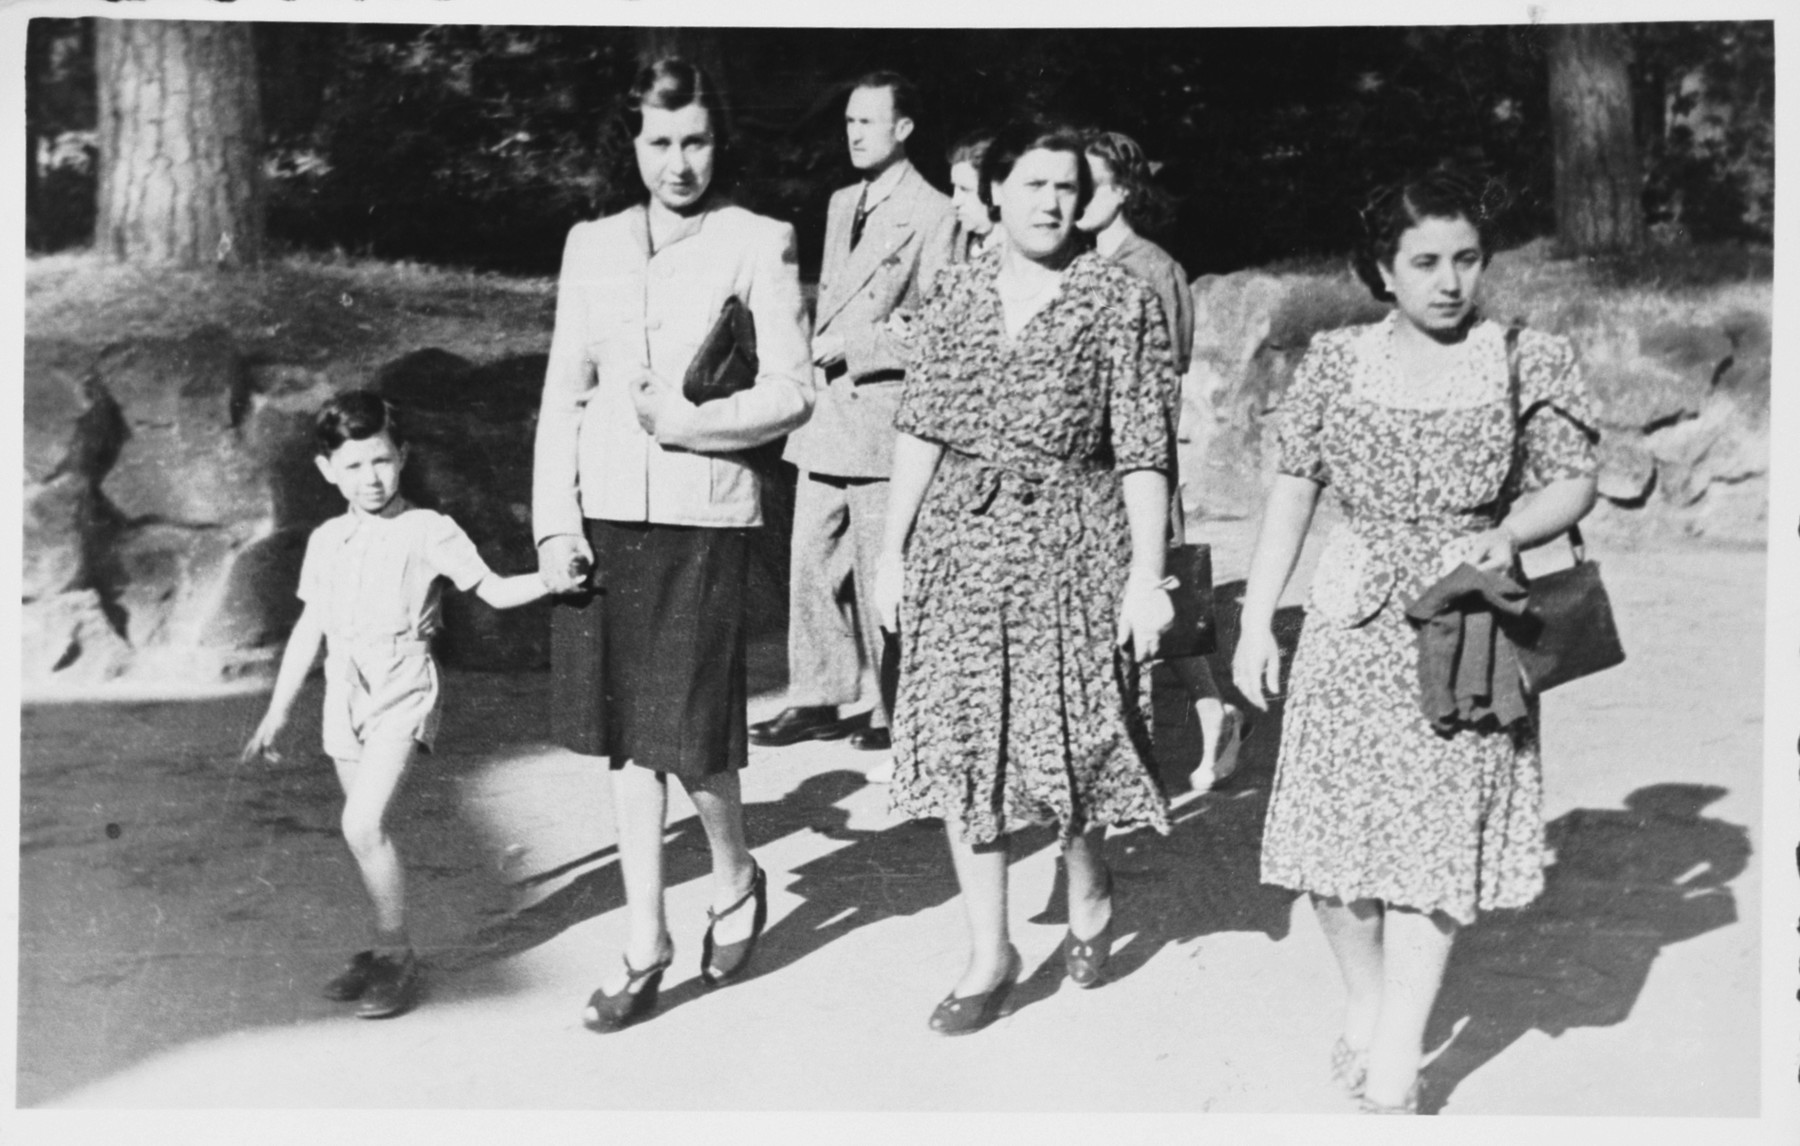 Cristina Frascatani  walks down the street with a group of Jewish freinds including two whom she hid during the war.  From left to right are Giancarlo Spizzichino holding the hand of Irma Pesci.  Cristina Frascatani (Giancarlo's rescuer) is in the center.  Wilhelma Spagnoletto, the aunt of Giancarlo, is on the right.    Wilhelma was also hidden by Cristina Frascatani, as was her husband, Mario Abbina.